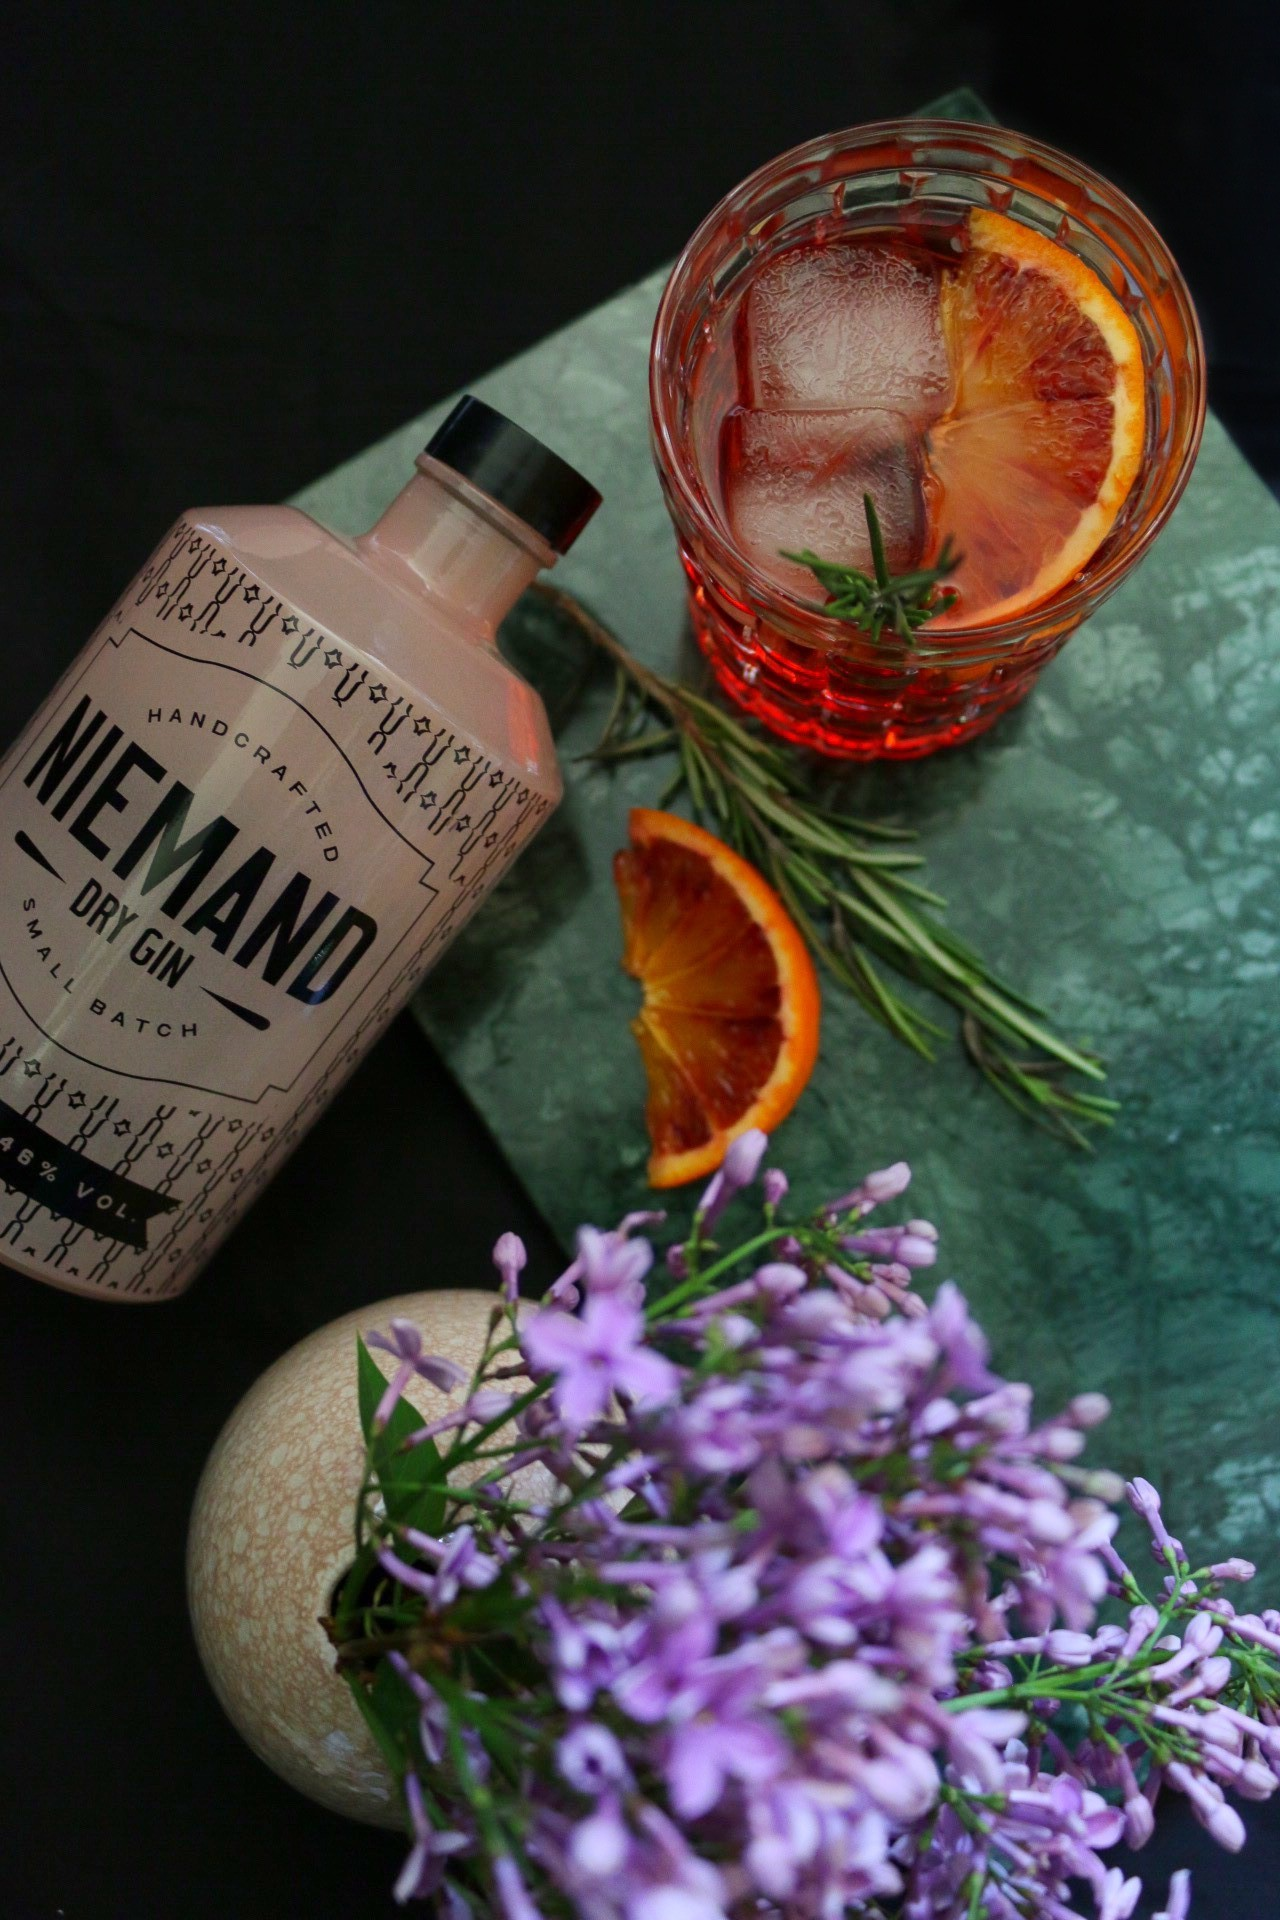 Gin & Bitter - Niemand Gin meets Sanbitter by eat blog love